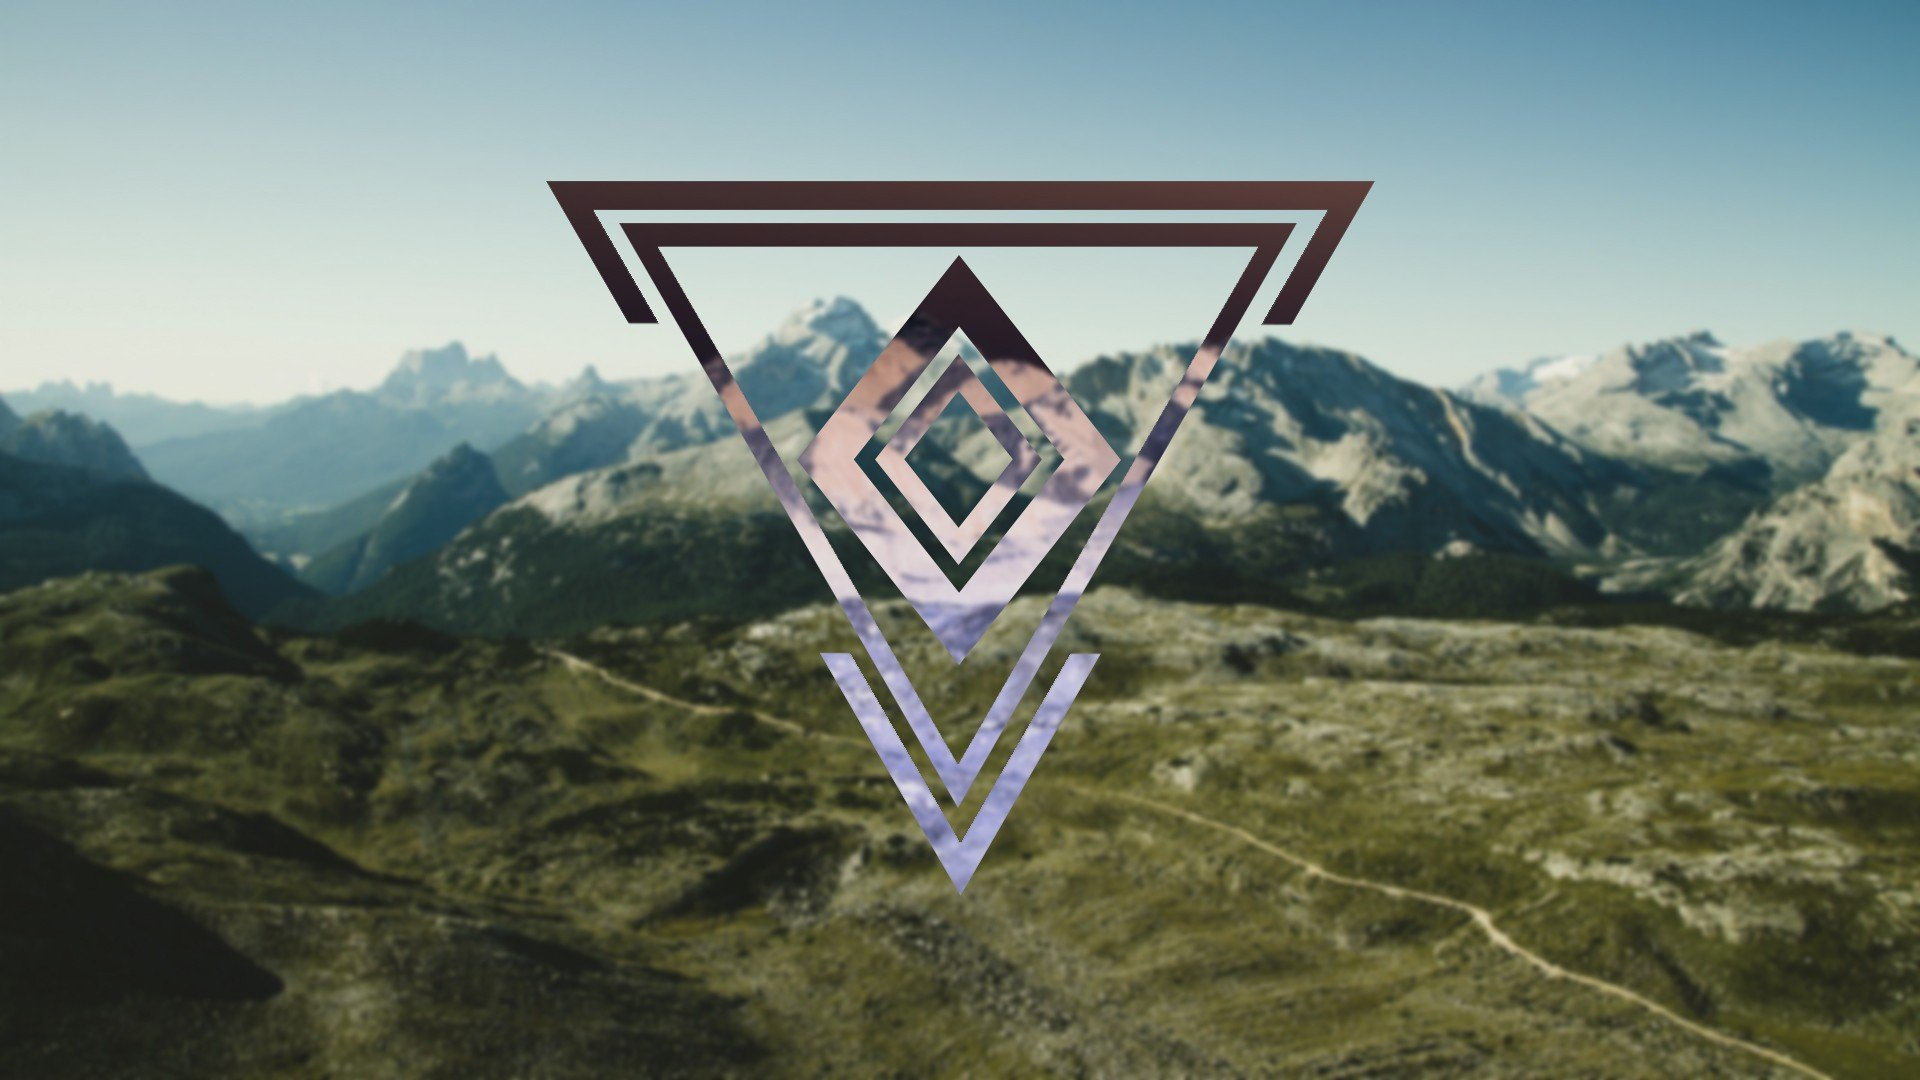 Good Wallpaper Mountain Triangle - 458544-triangle-Hipster_Photography-geometry  Snapshot_839138.jpg